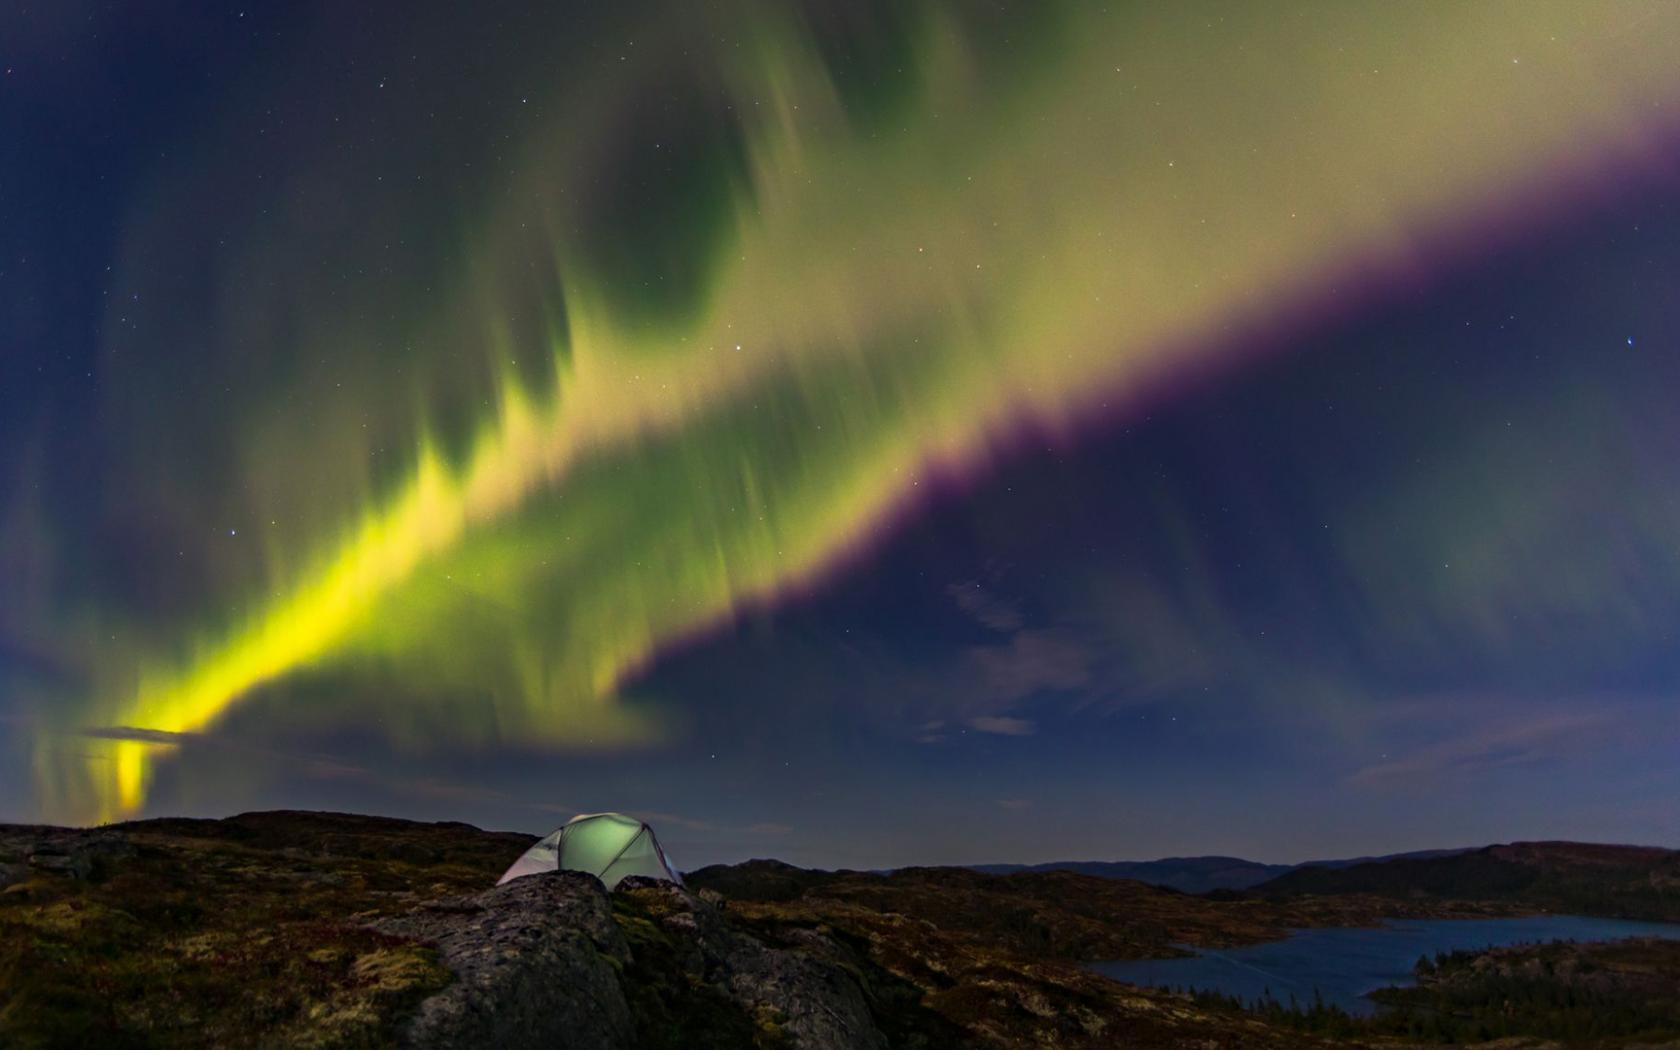 Natural Images Hd 1080p Download With Aurora Borealis Over